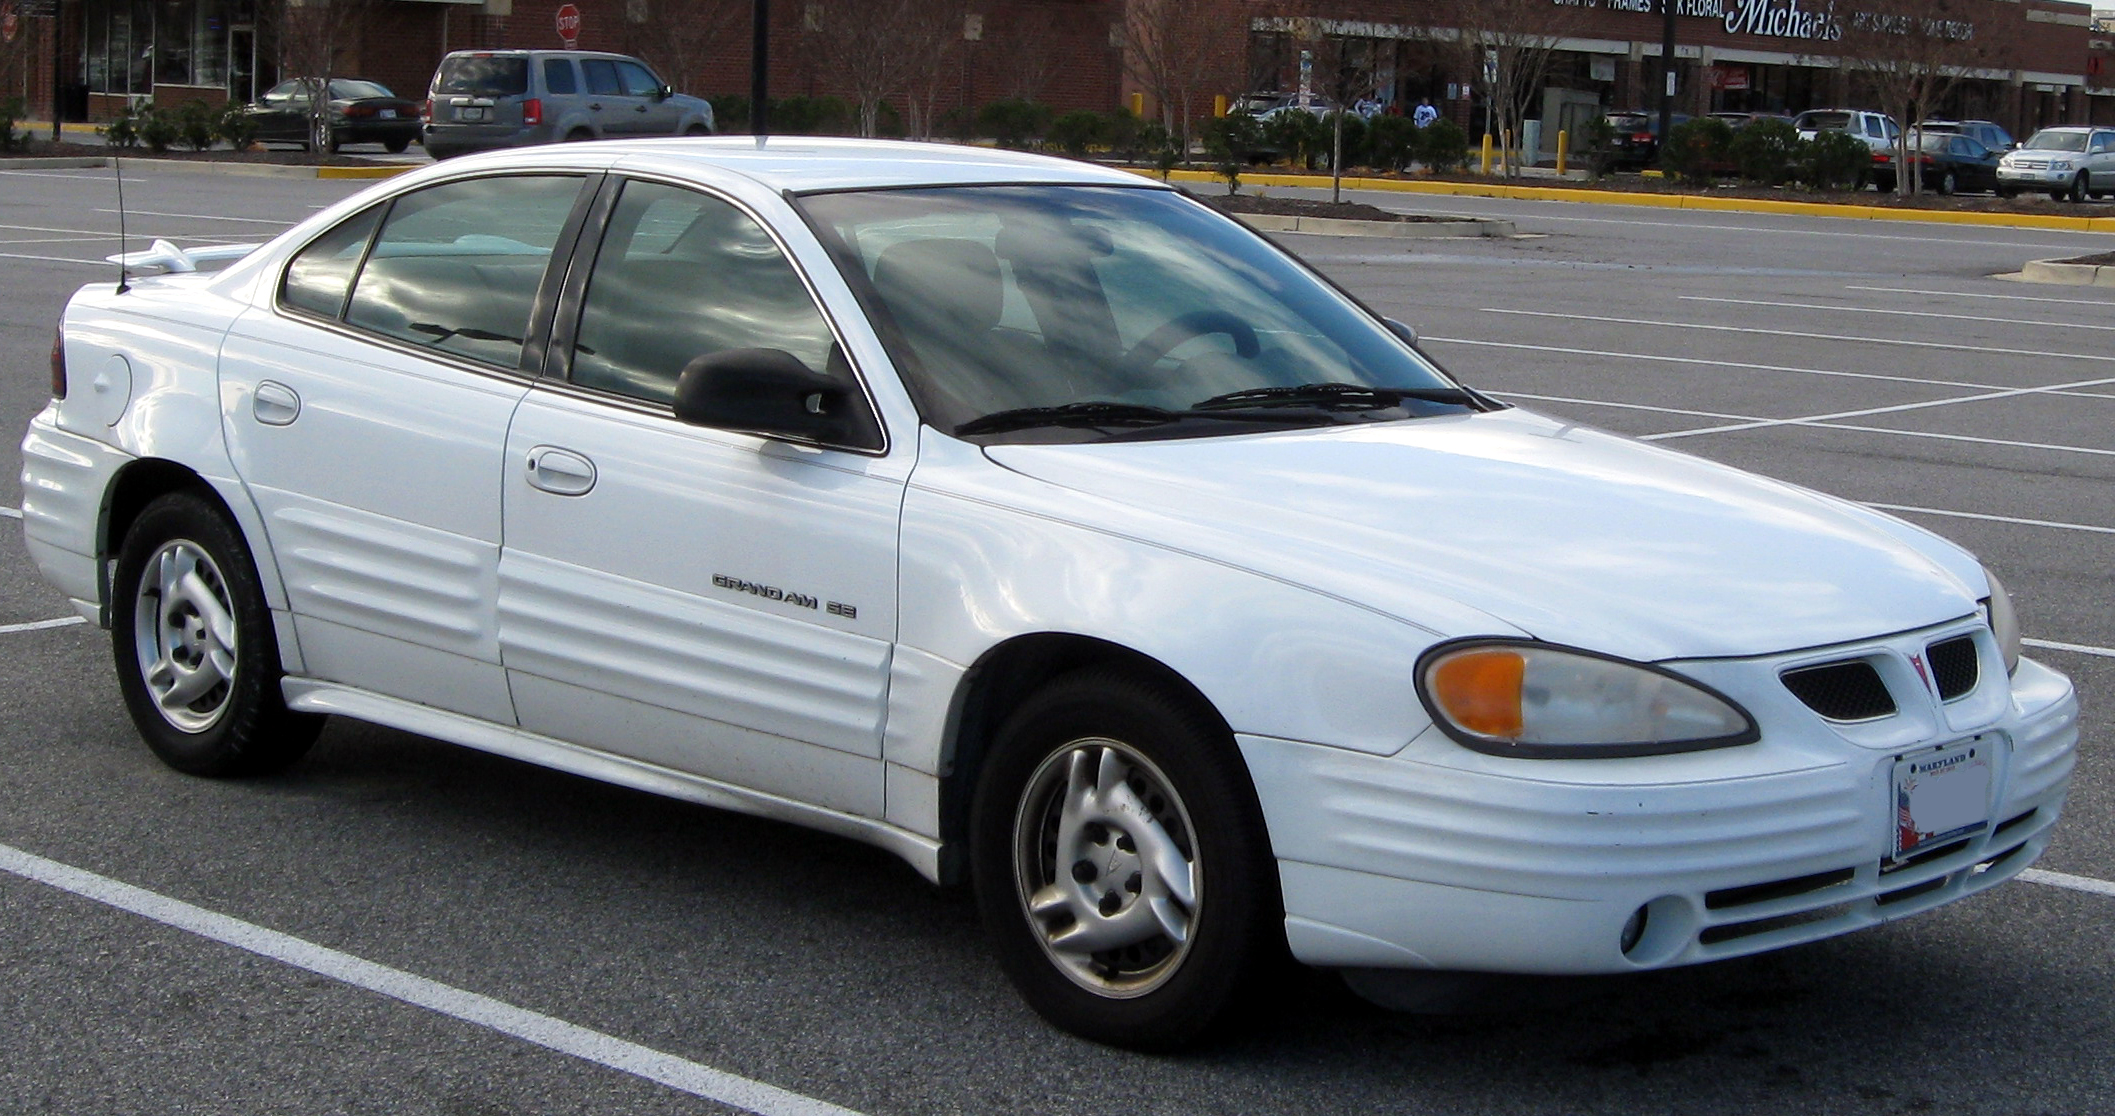 Pontiac Grand Am #10